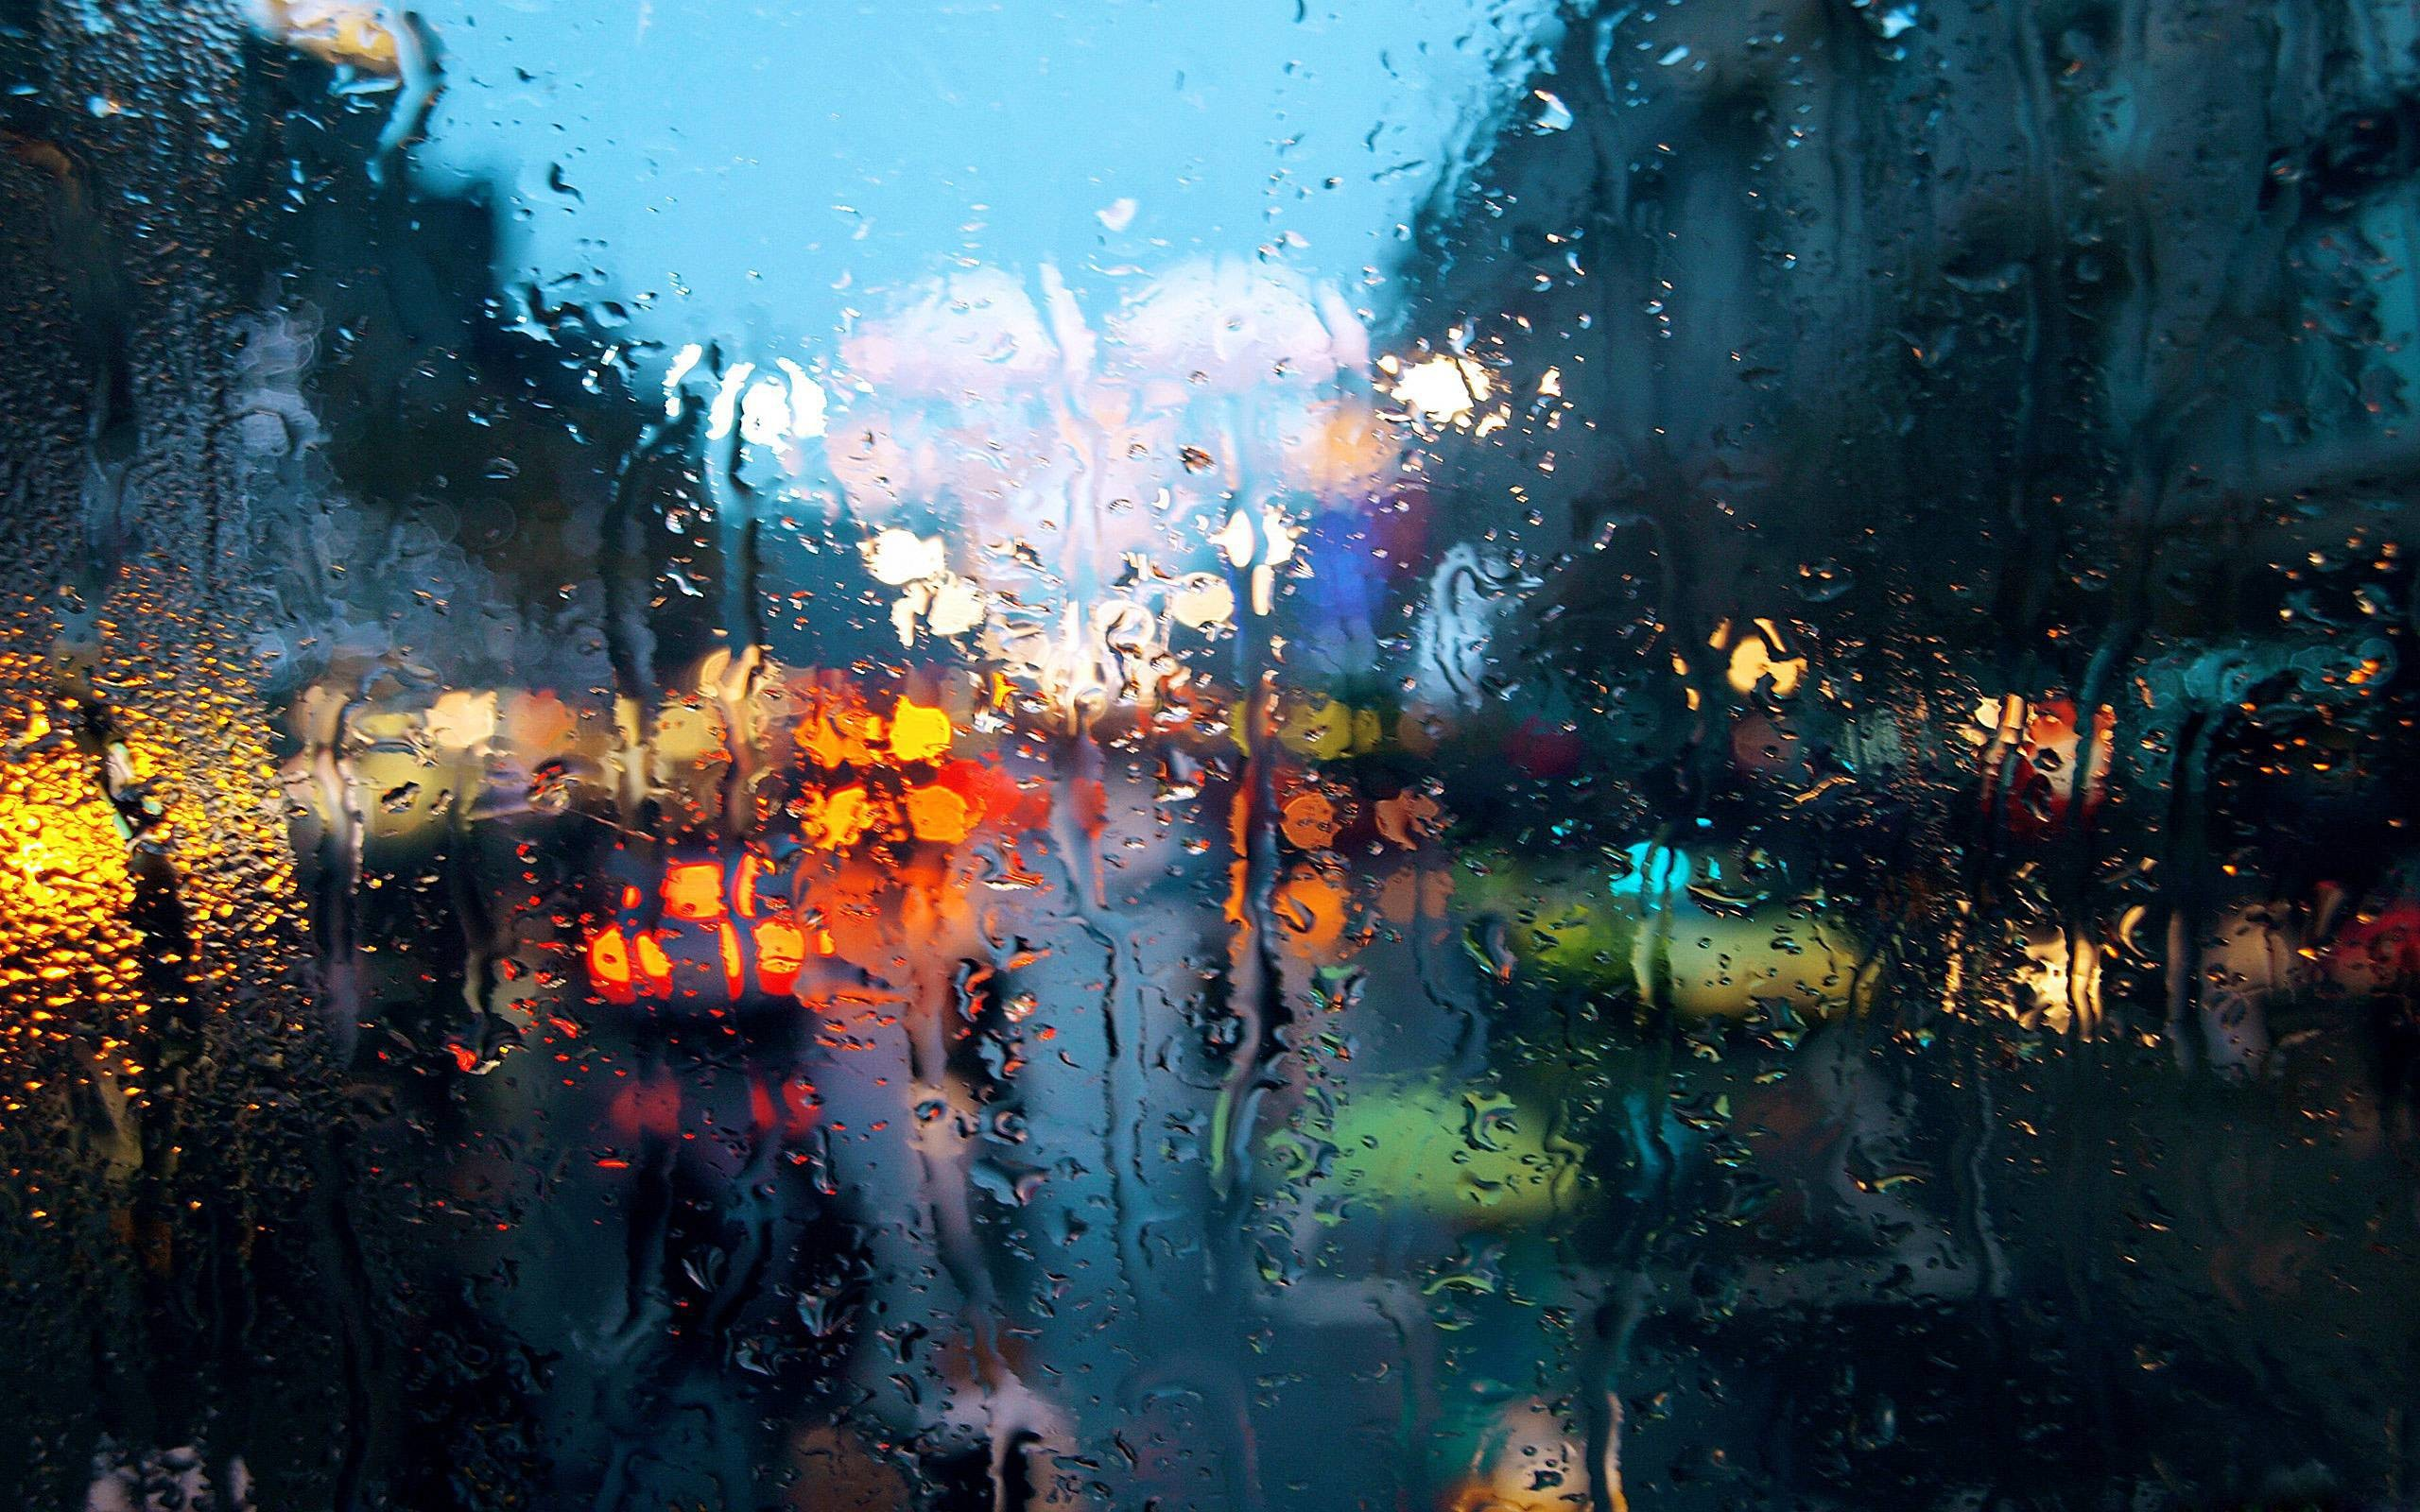 rain on window wallpaper ·①